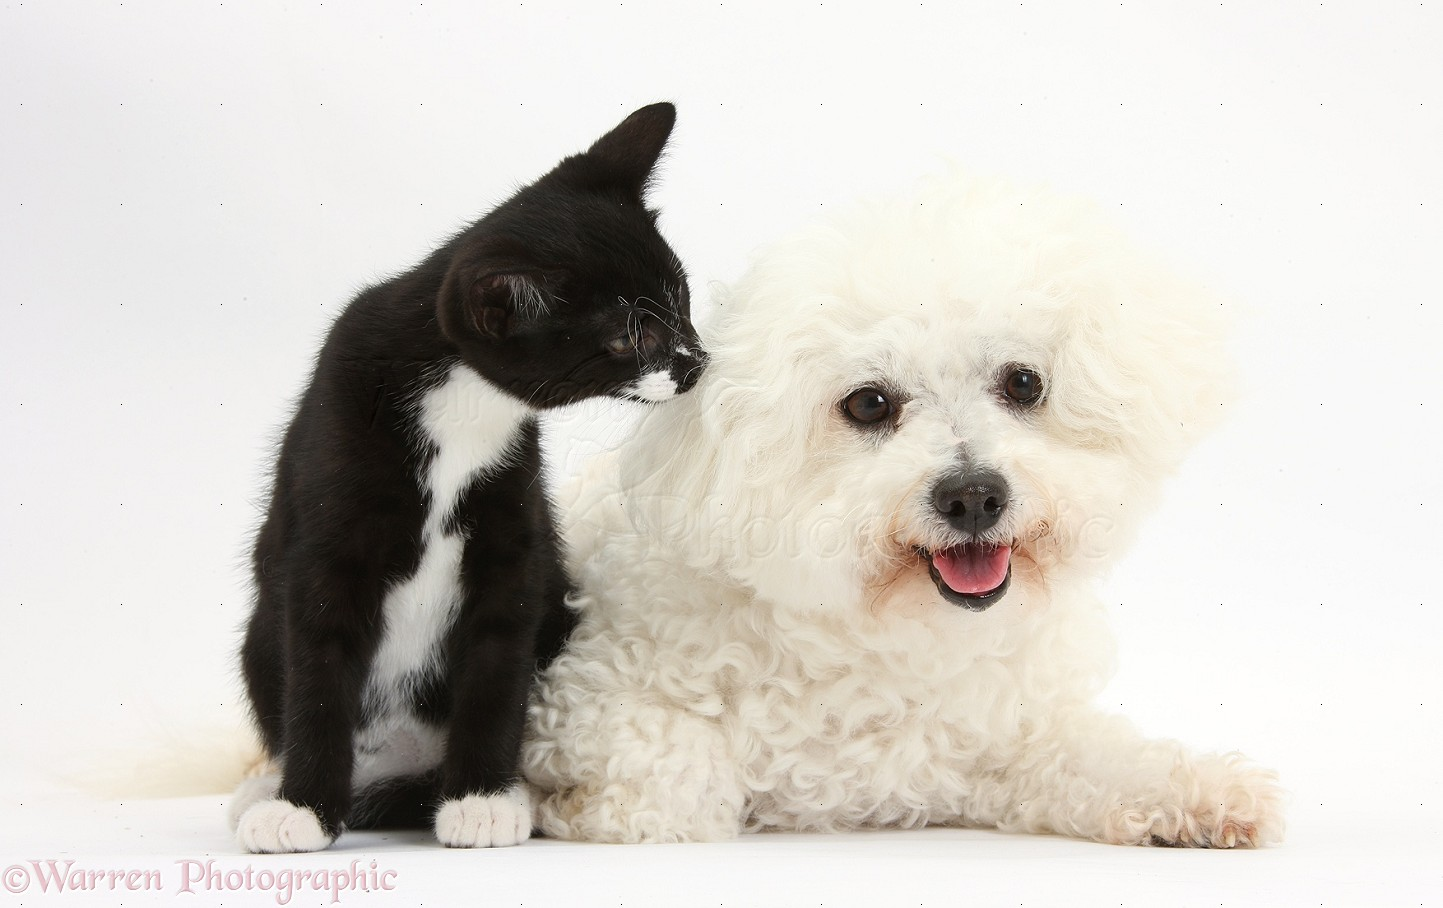 34109 bichon frise and black and white kitten white background